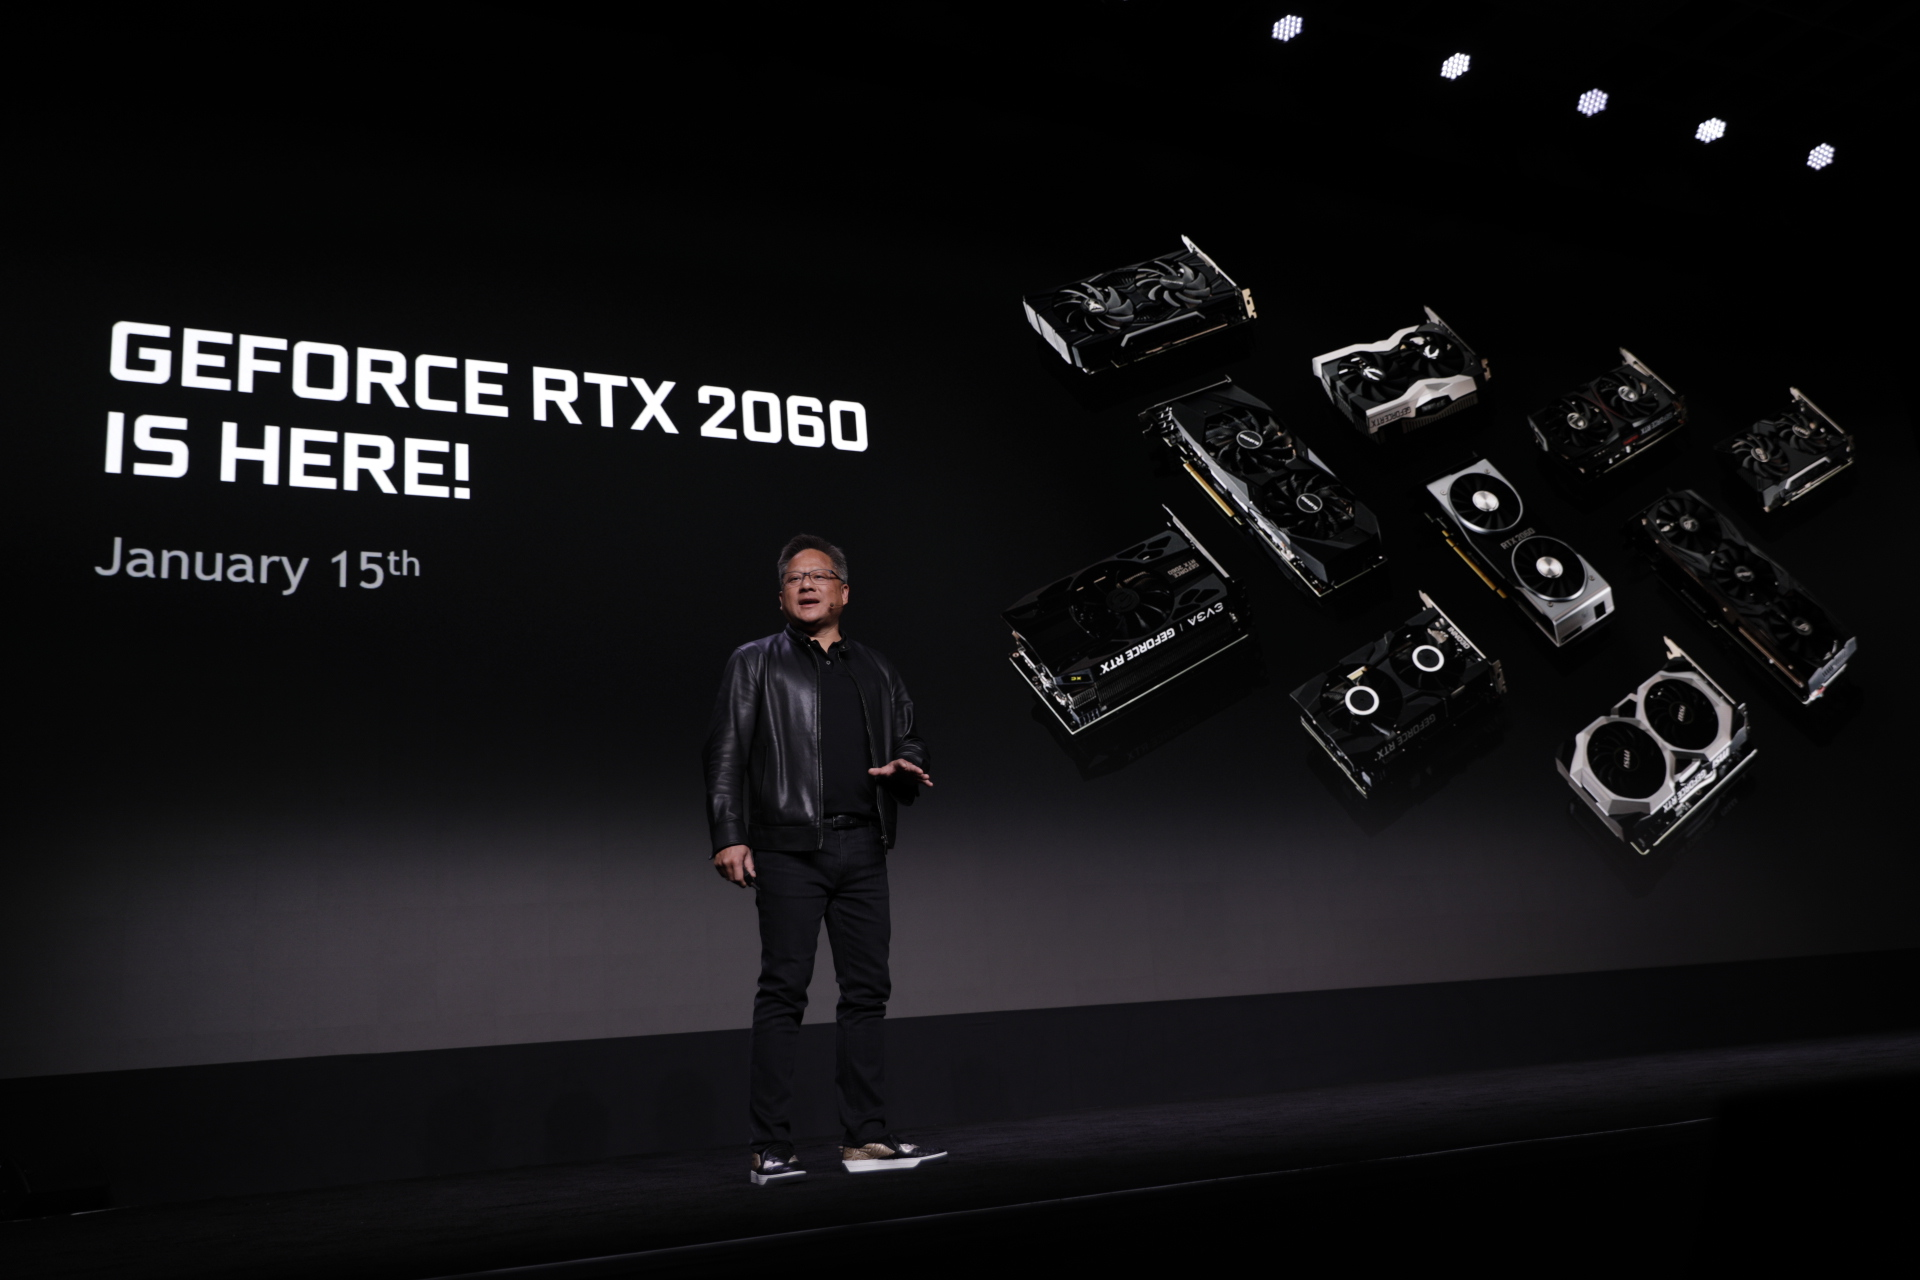 Closing Thoughts - The NVIDIA GeForce RTX 2060 6GB Founders Edition